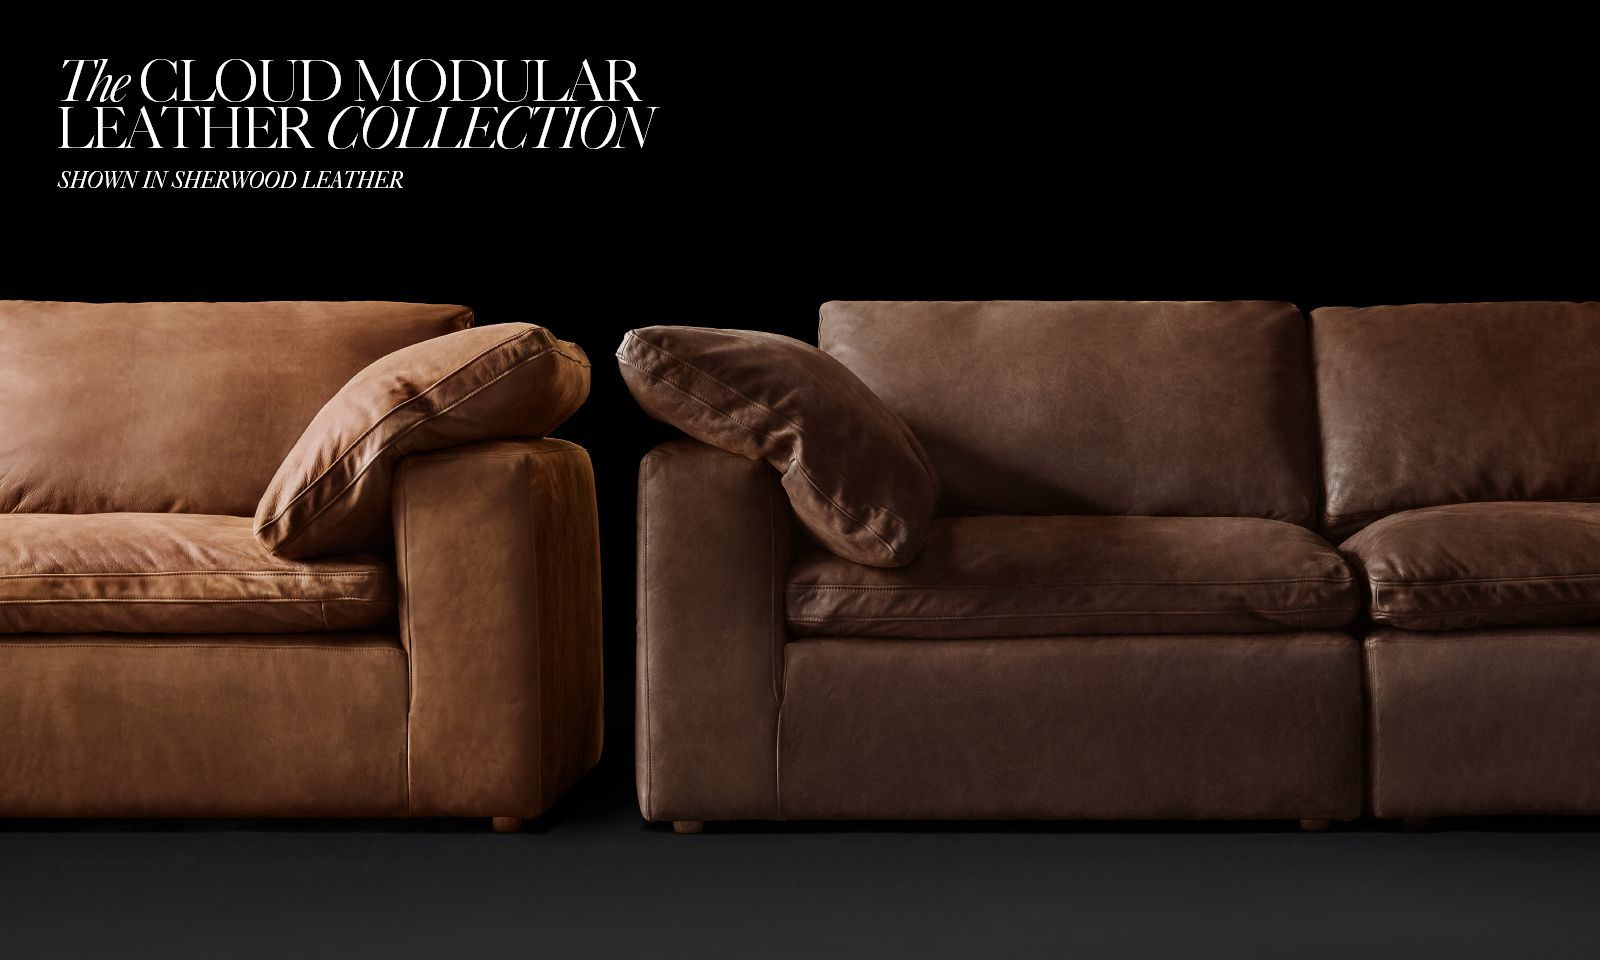 ... The Cloud Modular Leather Collection